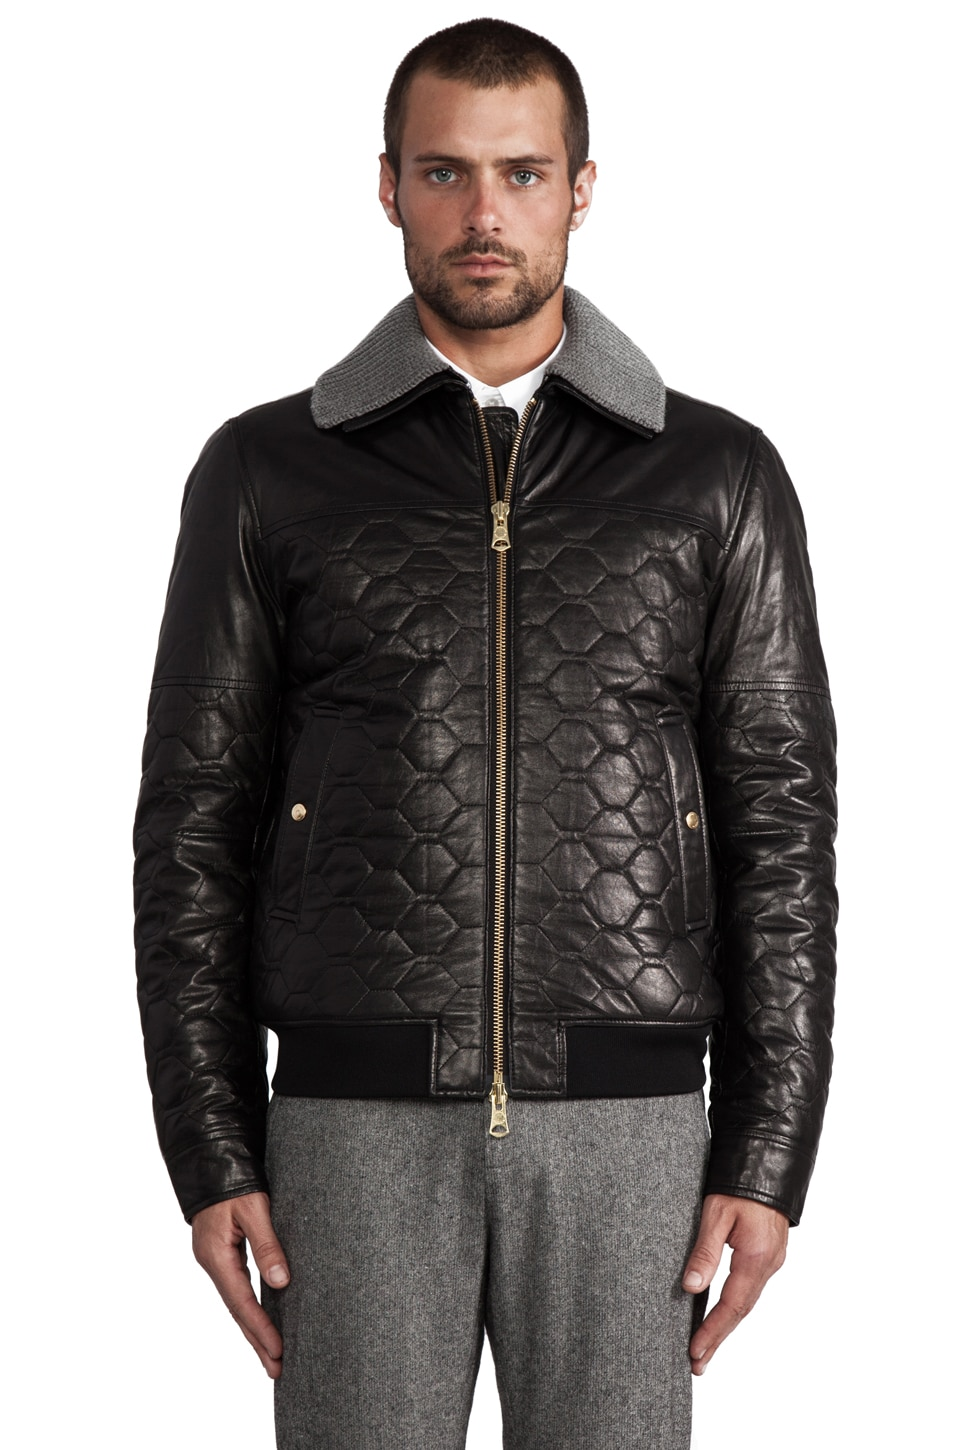 J. Lindeberg Cevin Quilted Leather Jacket in Black